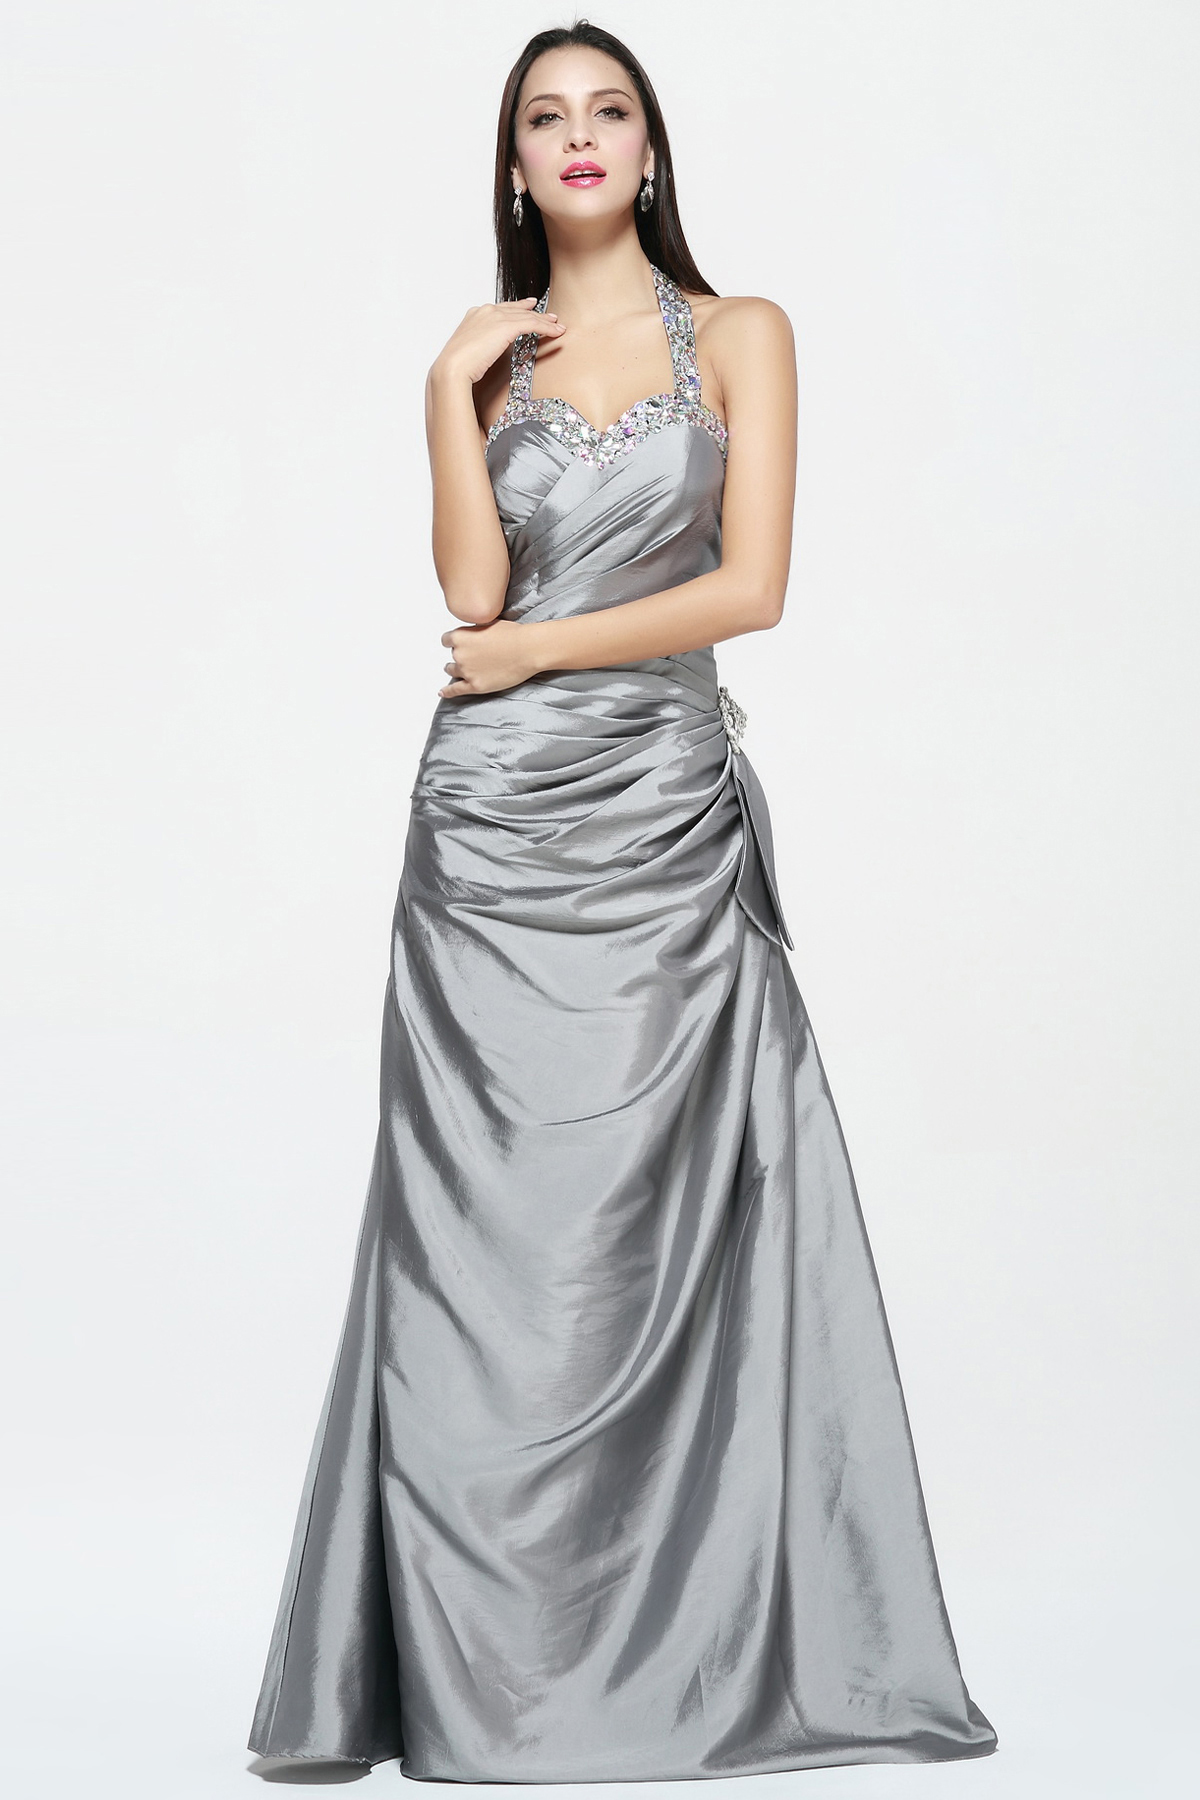 Sleeveless Halter Neck A-line Long Taffeta Prom Dress with Bow Back